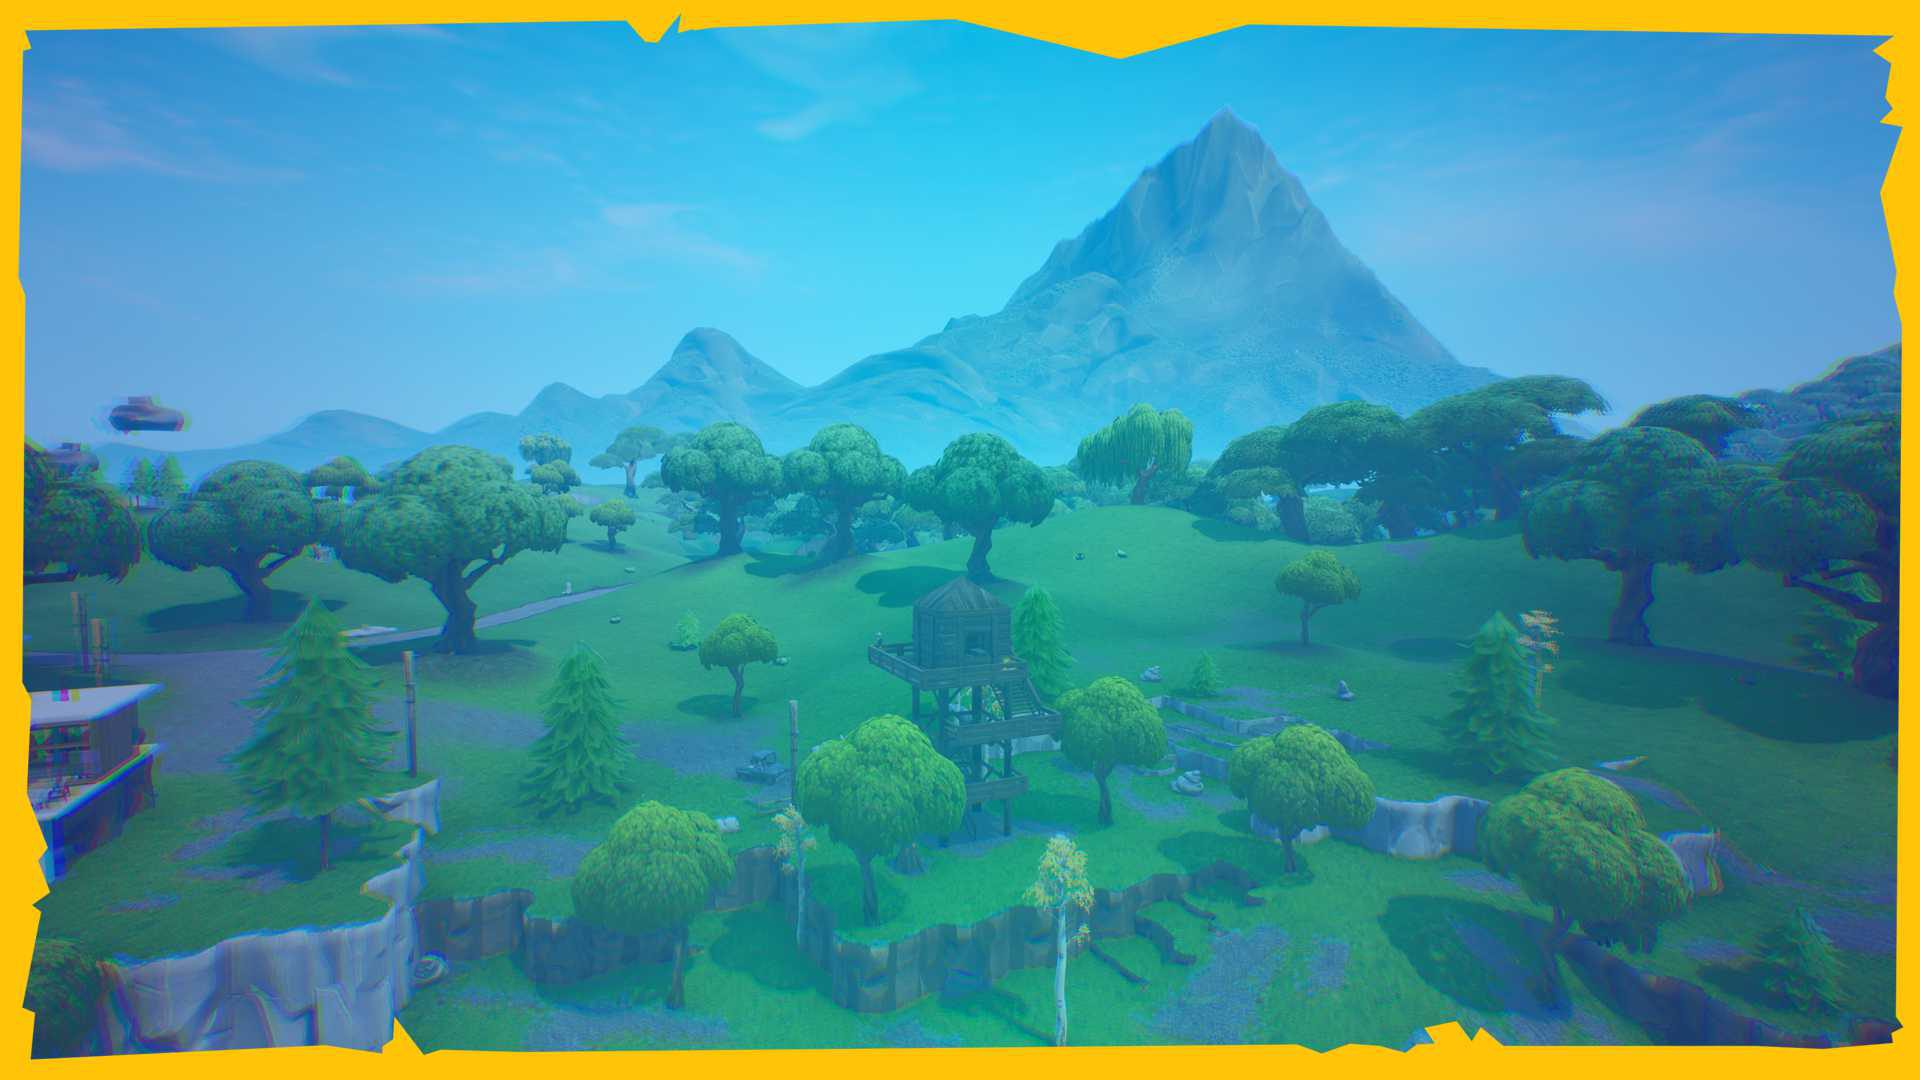 Fortnite map background in Game On gaming video masterclass